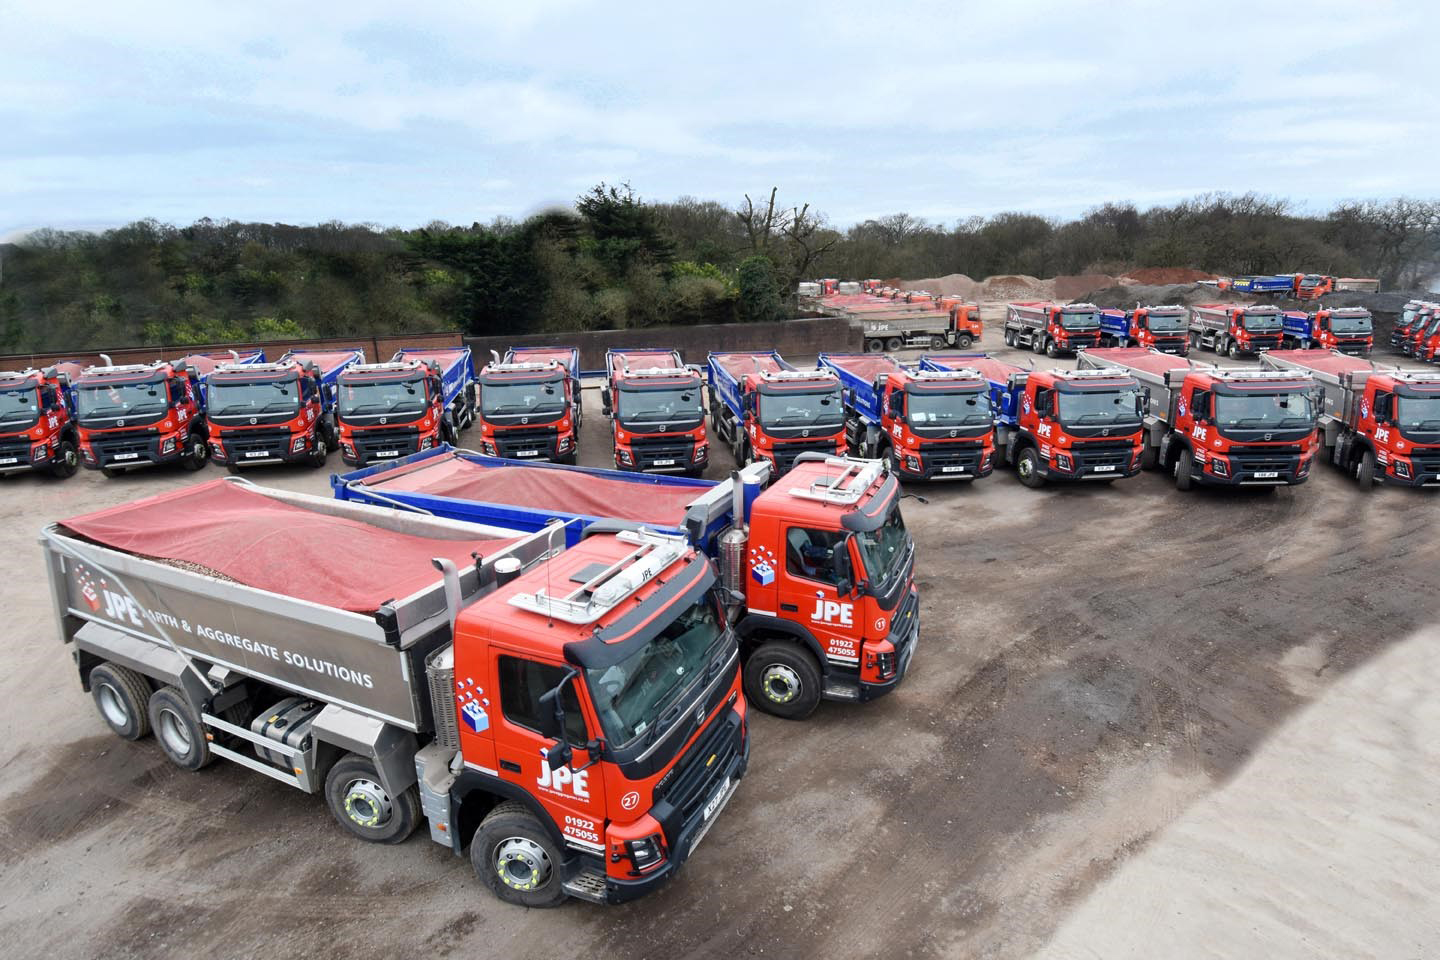 JPE Aggregates turns to Edbro cylinders for improved tipping performance